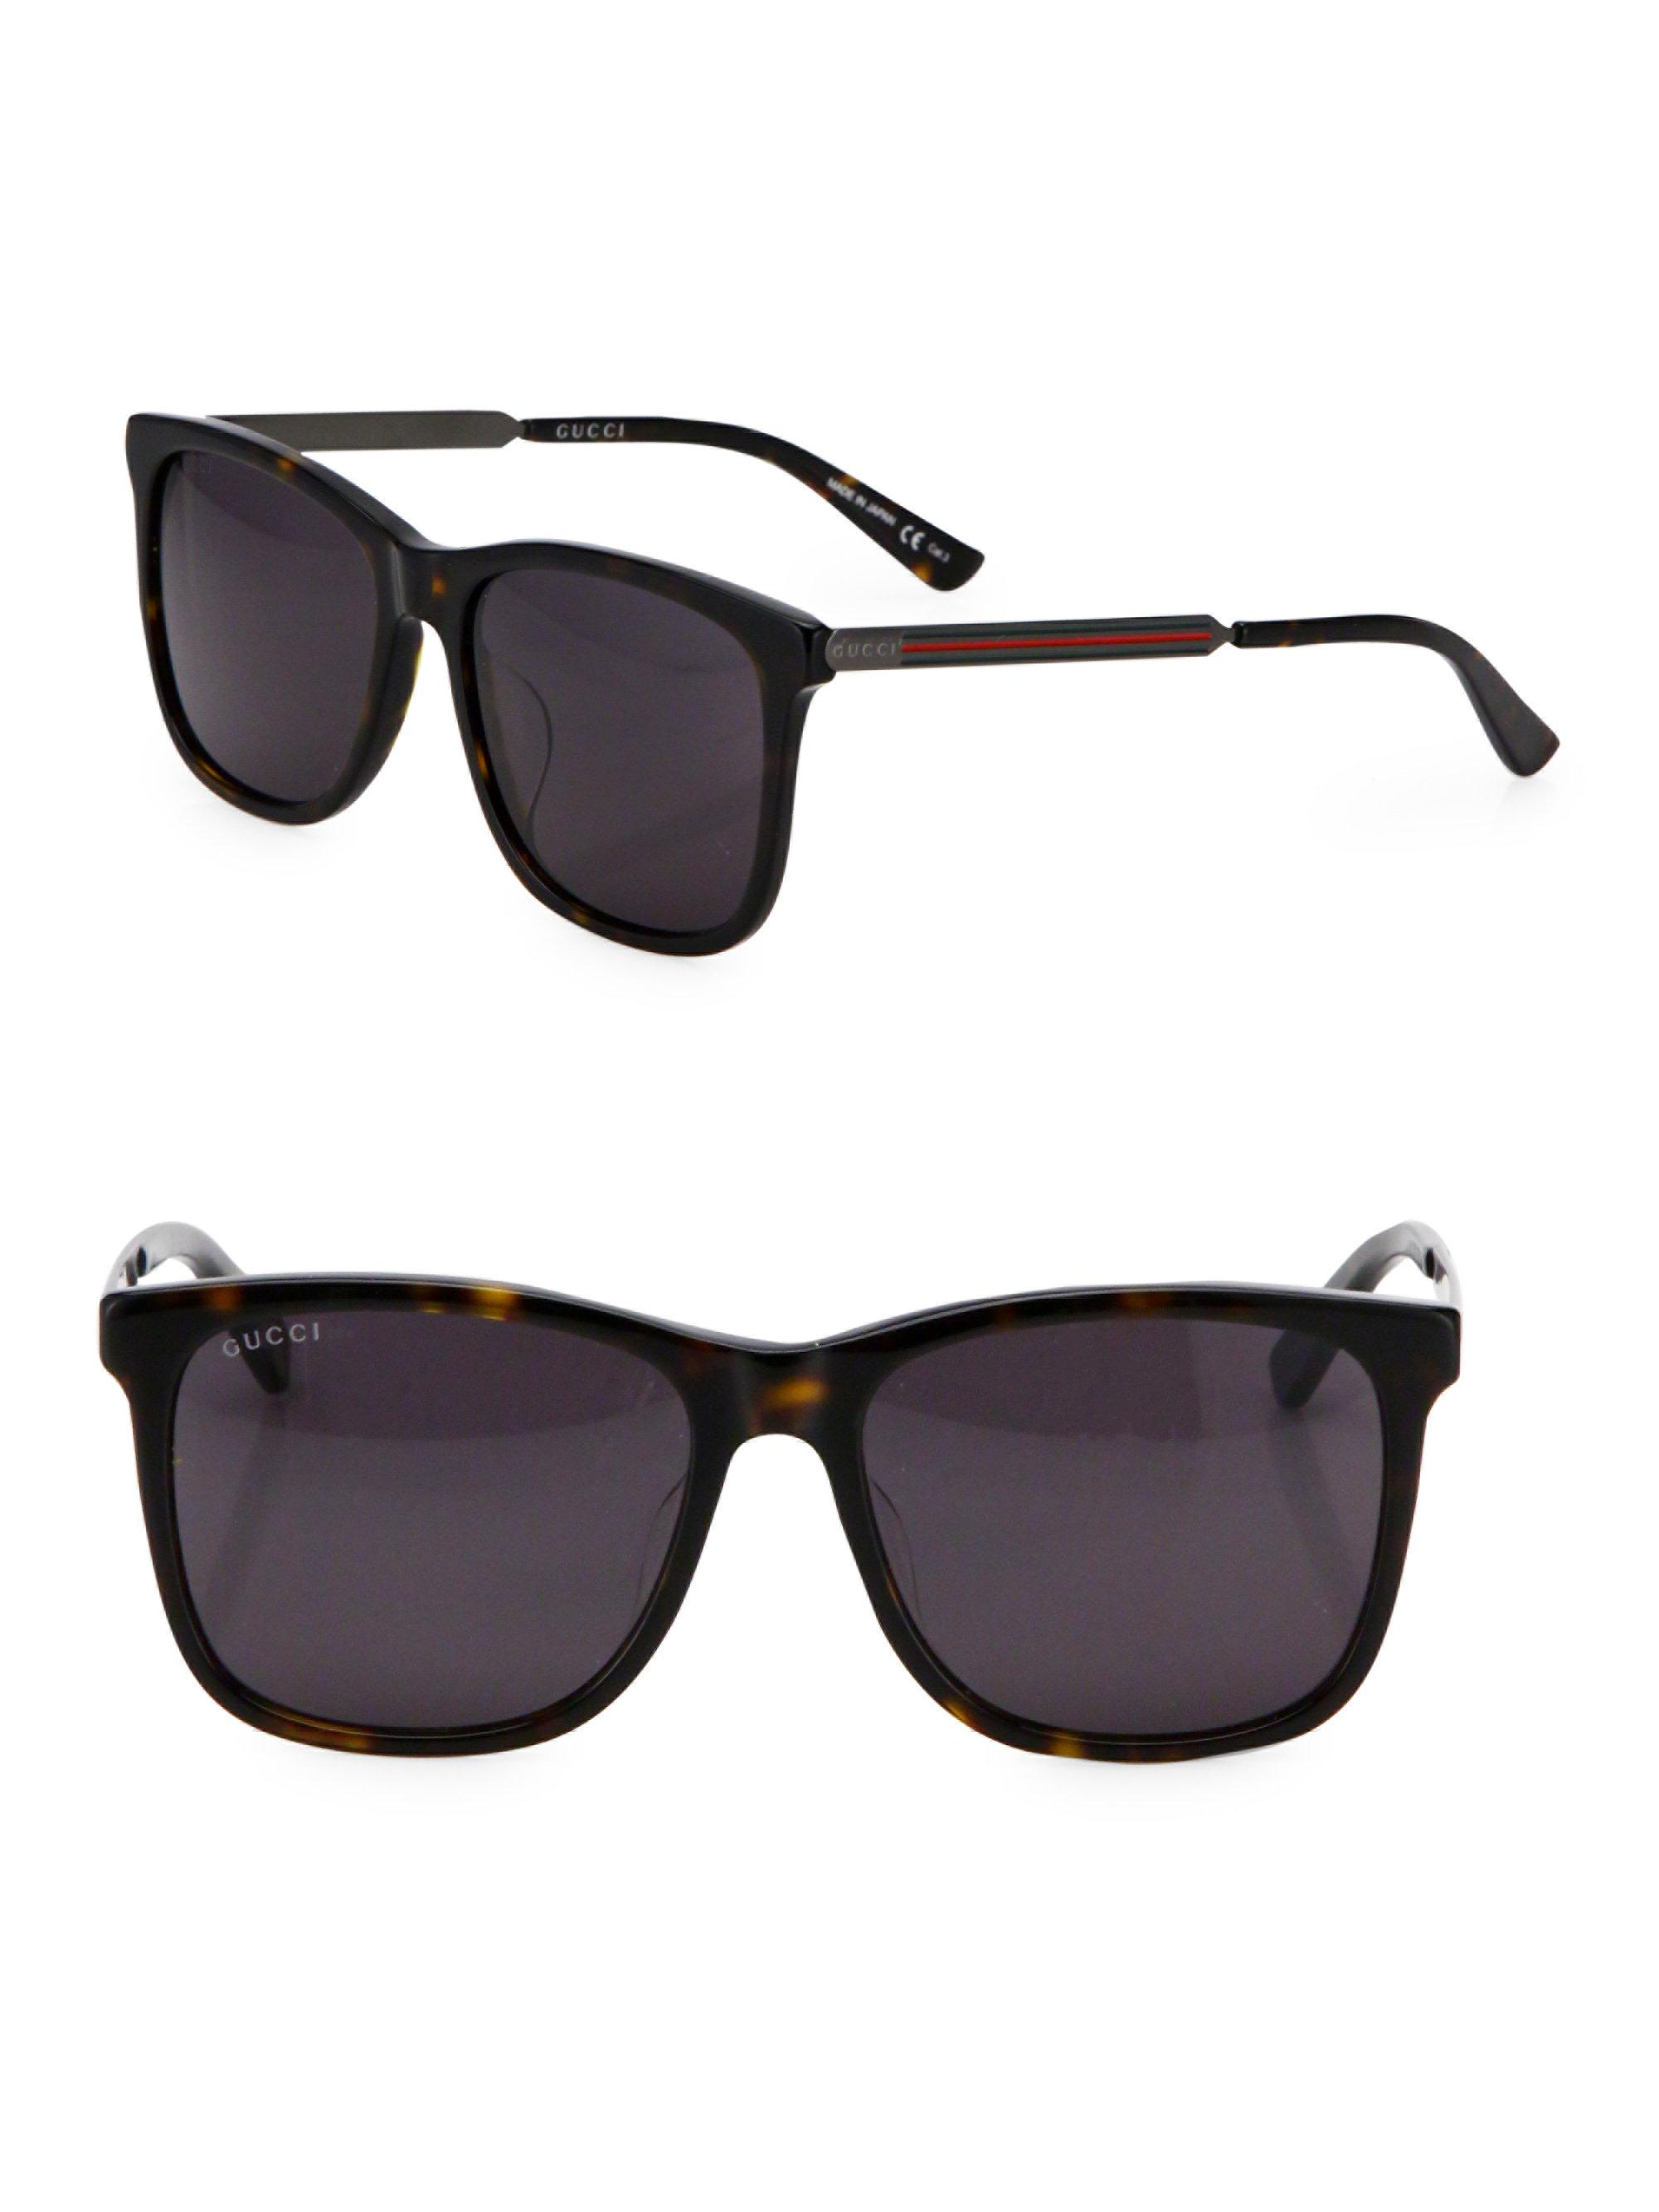 96c553656 Gucci 56mm Web Detailed Square Sunglasses for Men - Lyst